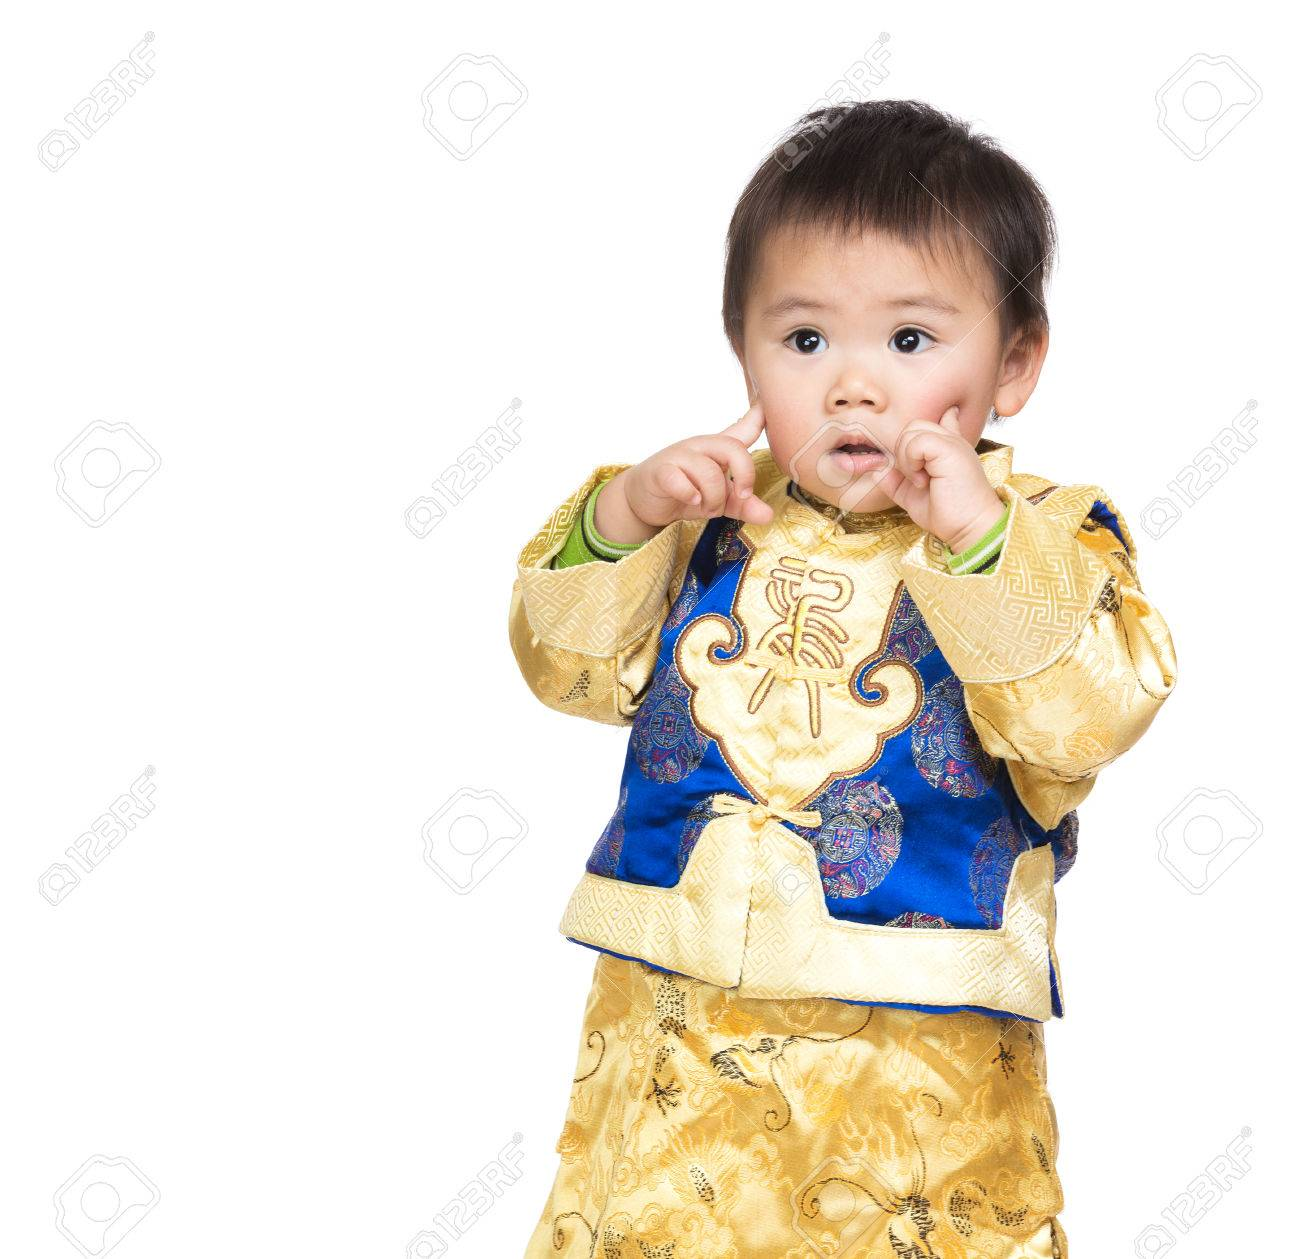 Asian baby boy with chinese costume and finger point to face Stock Photo - 26251659  sc 1 st  123RF.com & Asian baby boy with chinese costume and finger point to face